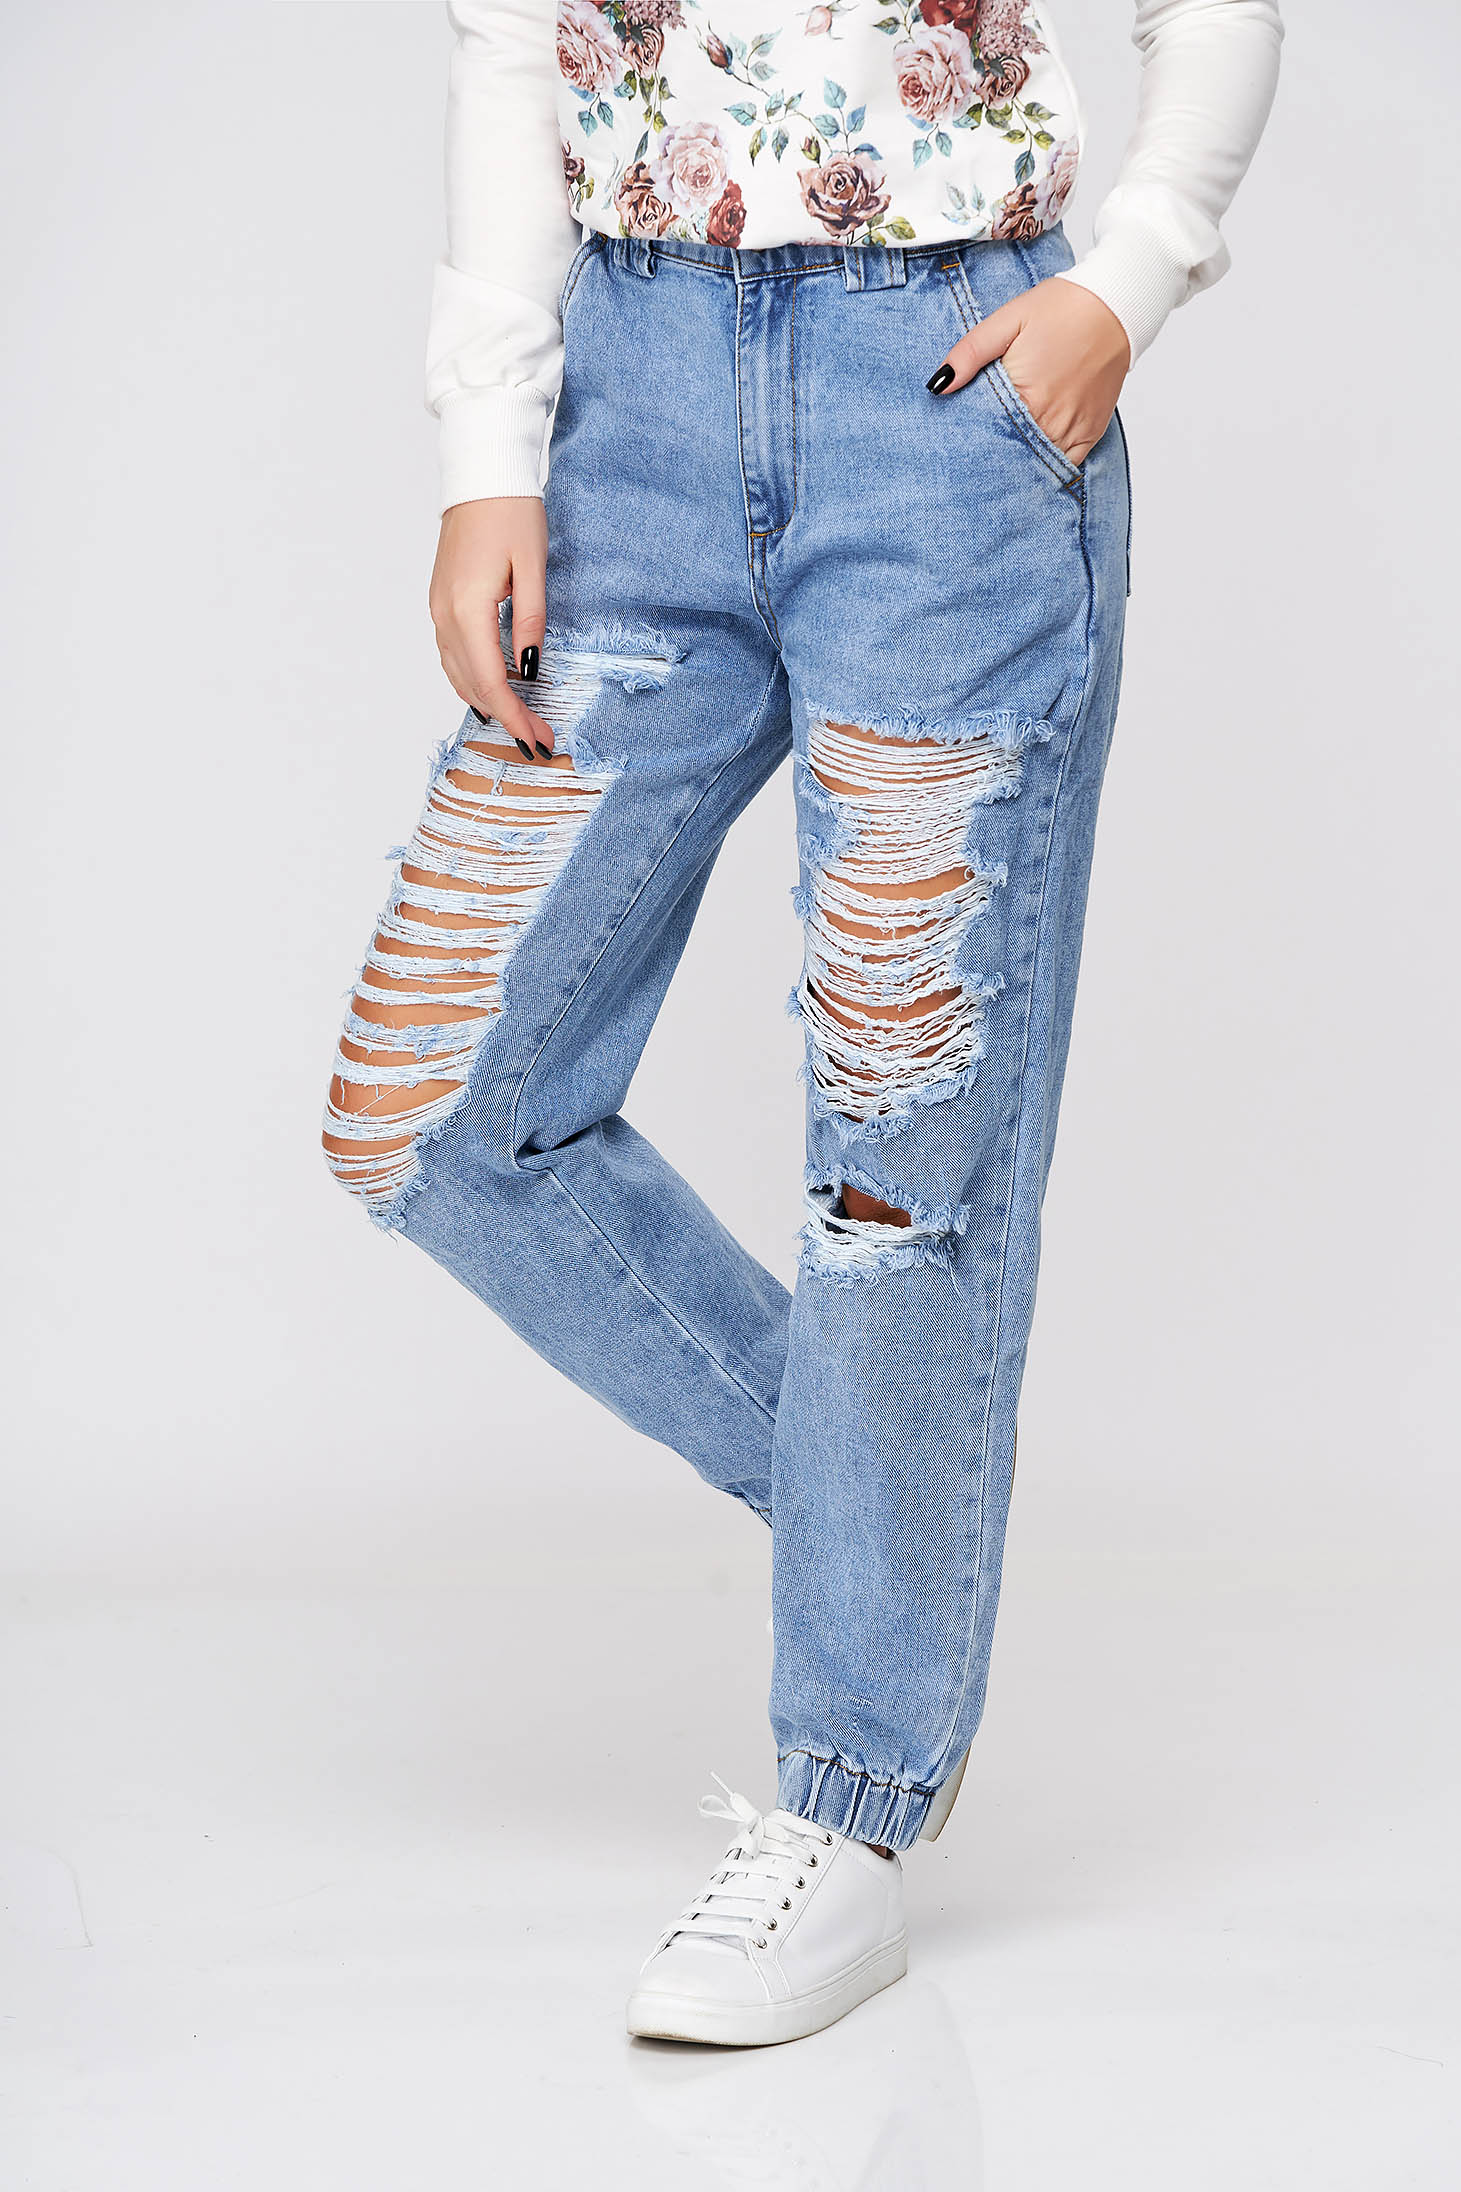 Blue jeans casual high waisted nonelastic cotton with laced details